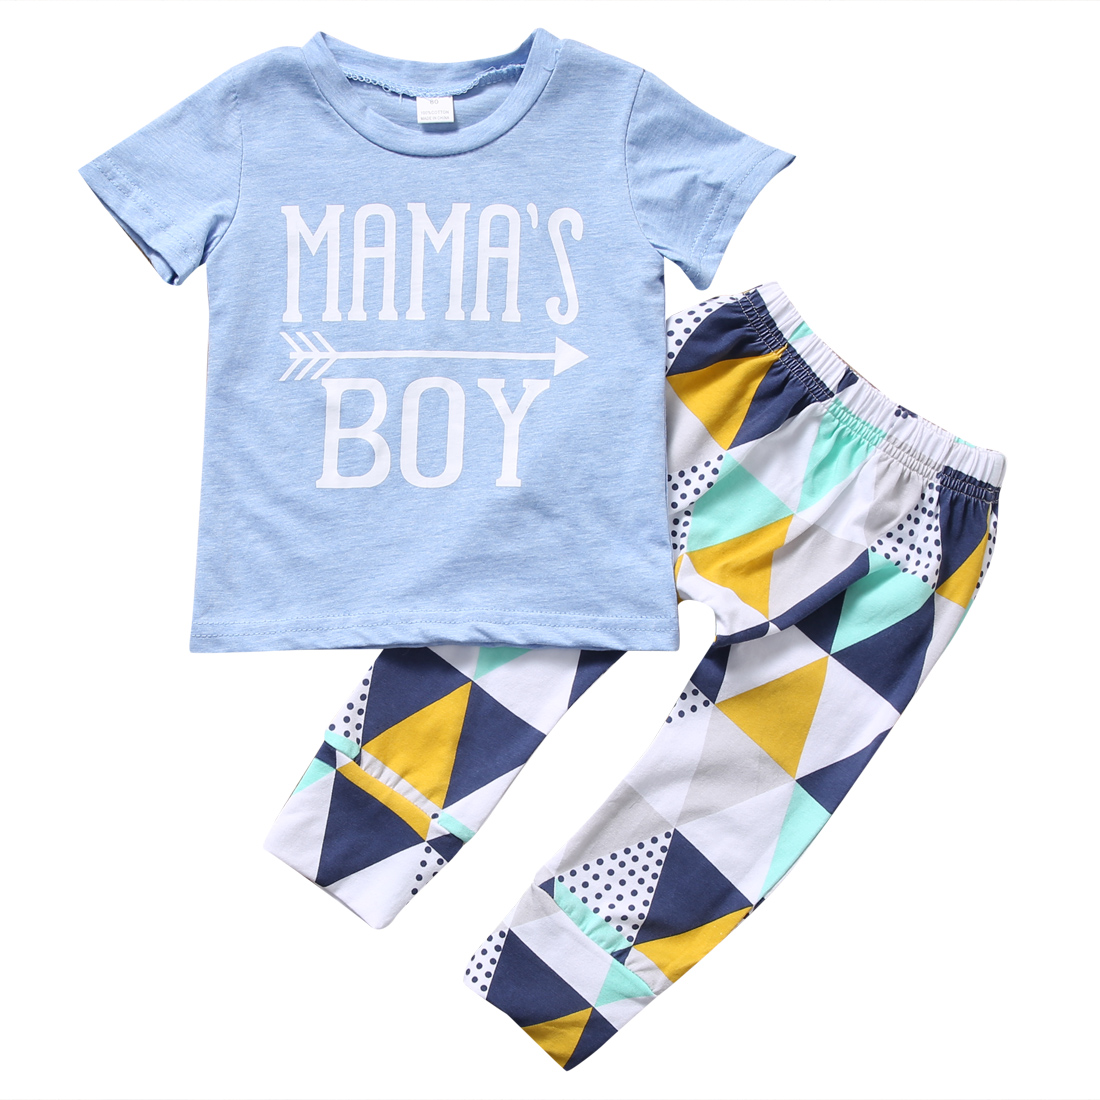 2PCS Newborn Baby Boys Outfits T-shirt Tops+ Pants Sets Clothes Summer Short Sleeve Mama Boy Print Tees Casual Clothes chinese yunnan puer 60g old ripe pu erh tea loose shu pu er tea green orangic food pu erh tea blood pressure slimming tea